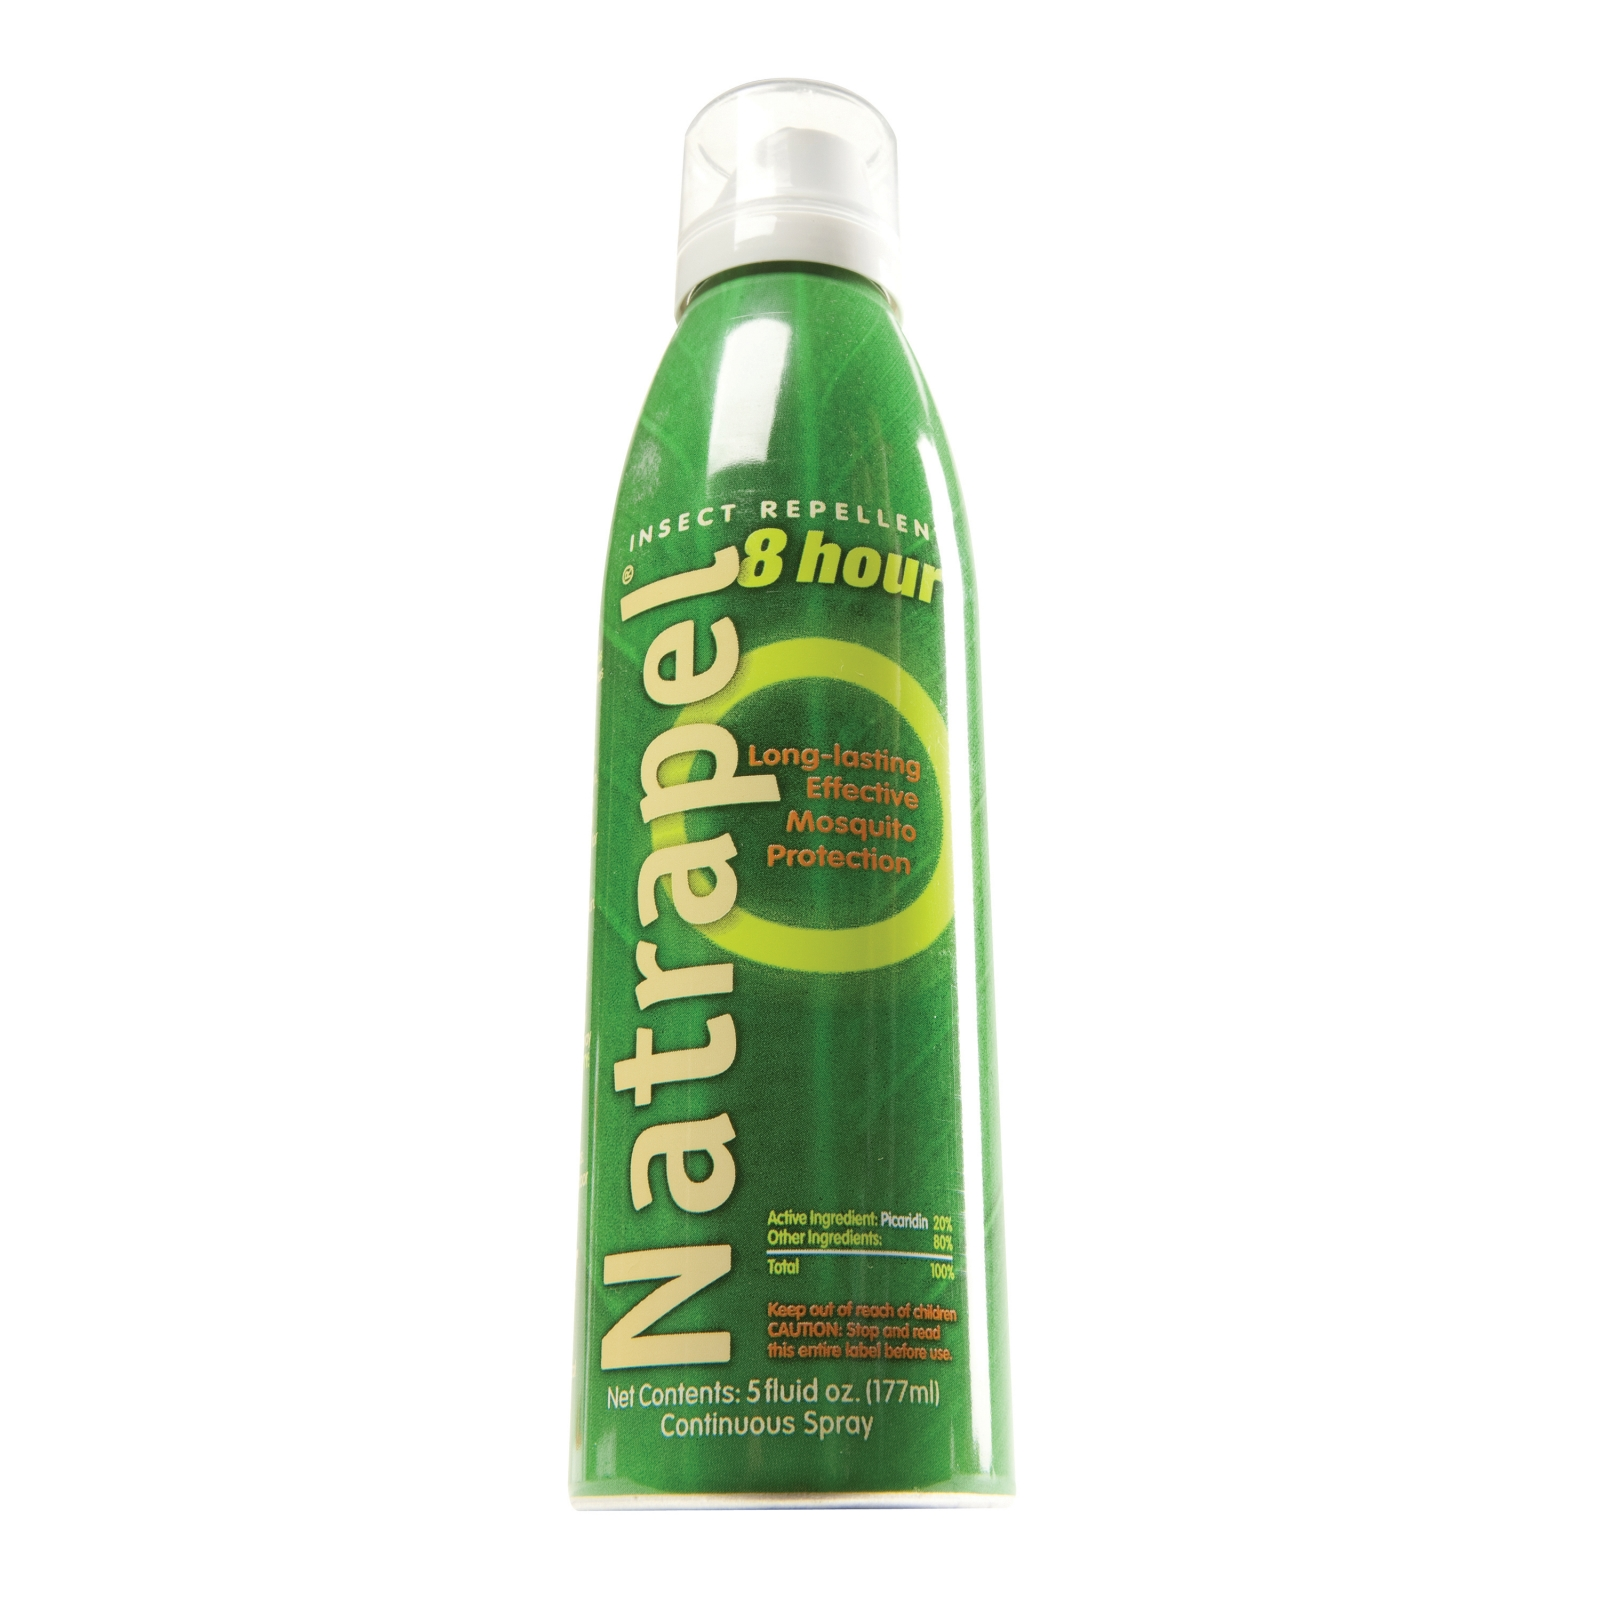 Natrapel 8 Hour Spray 5 oz, per 1